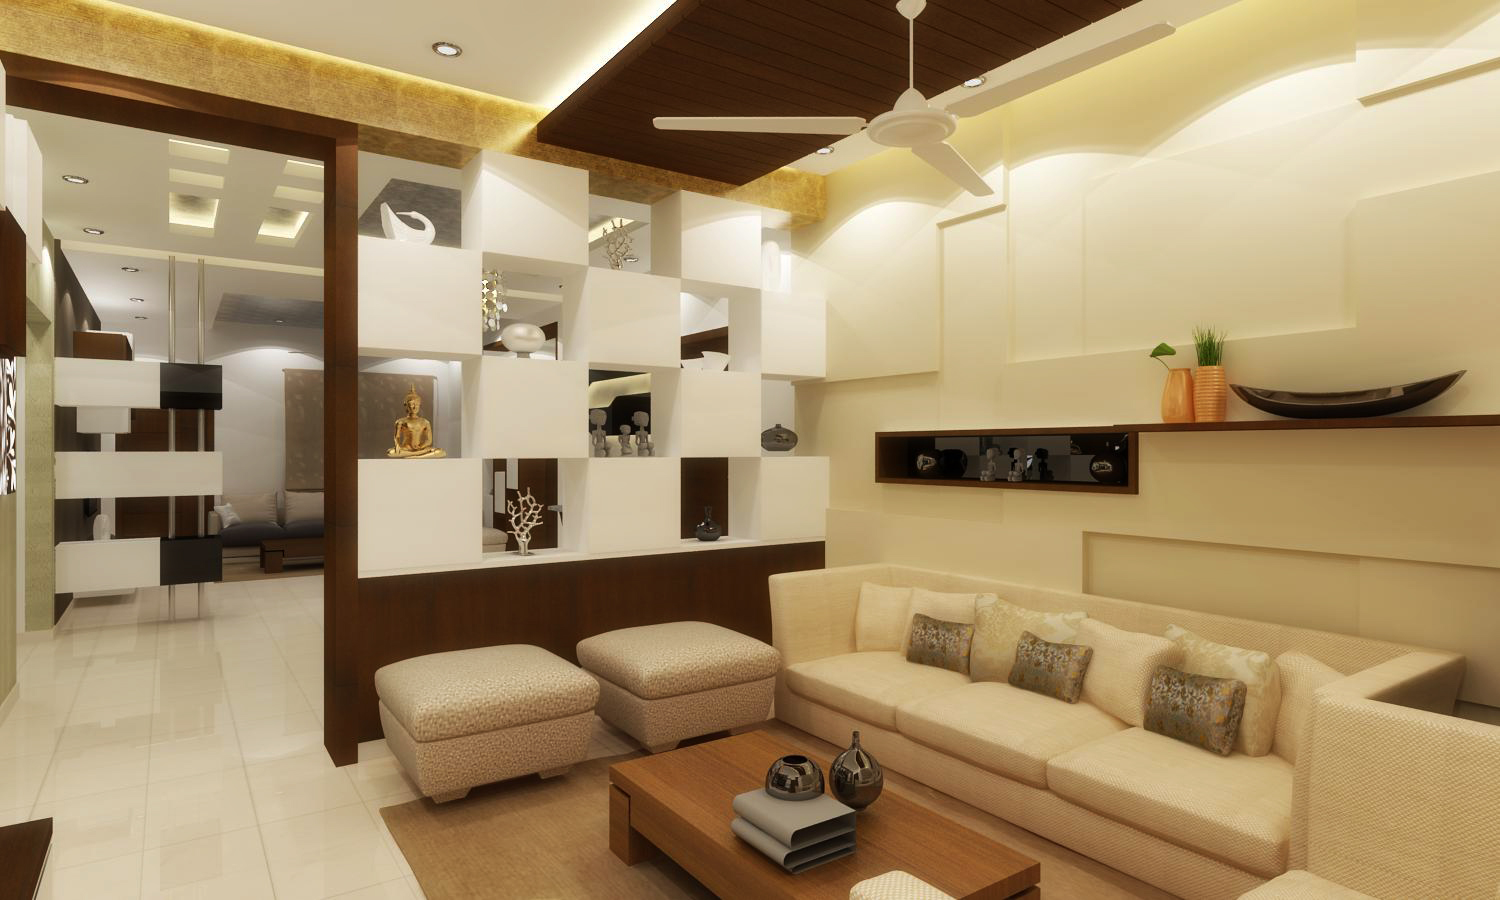 fedisa interior best interiors leading interior best interior designers Best Interior u0026 Furniture